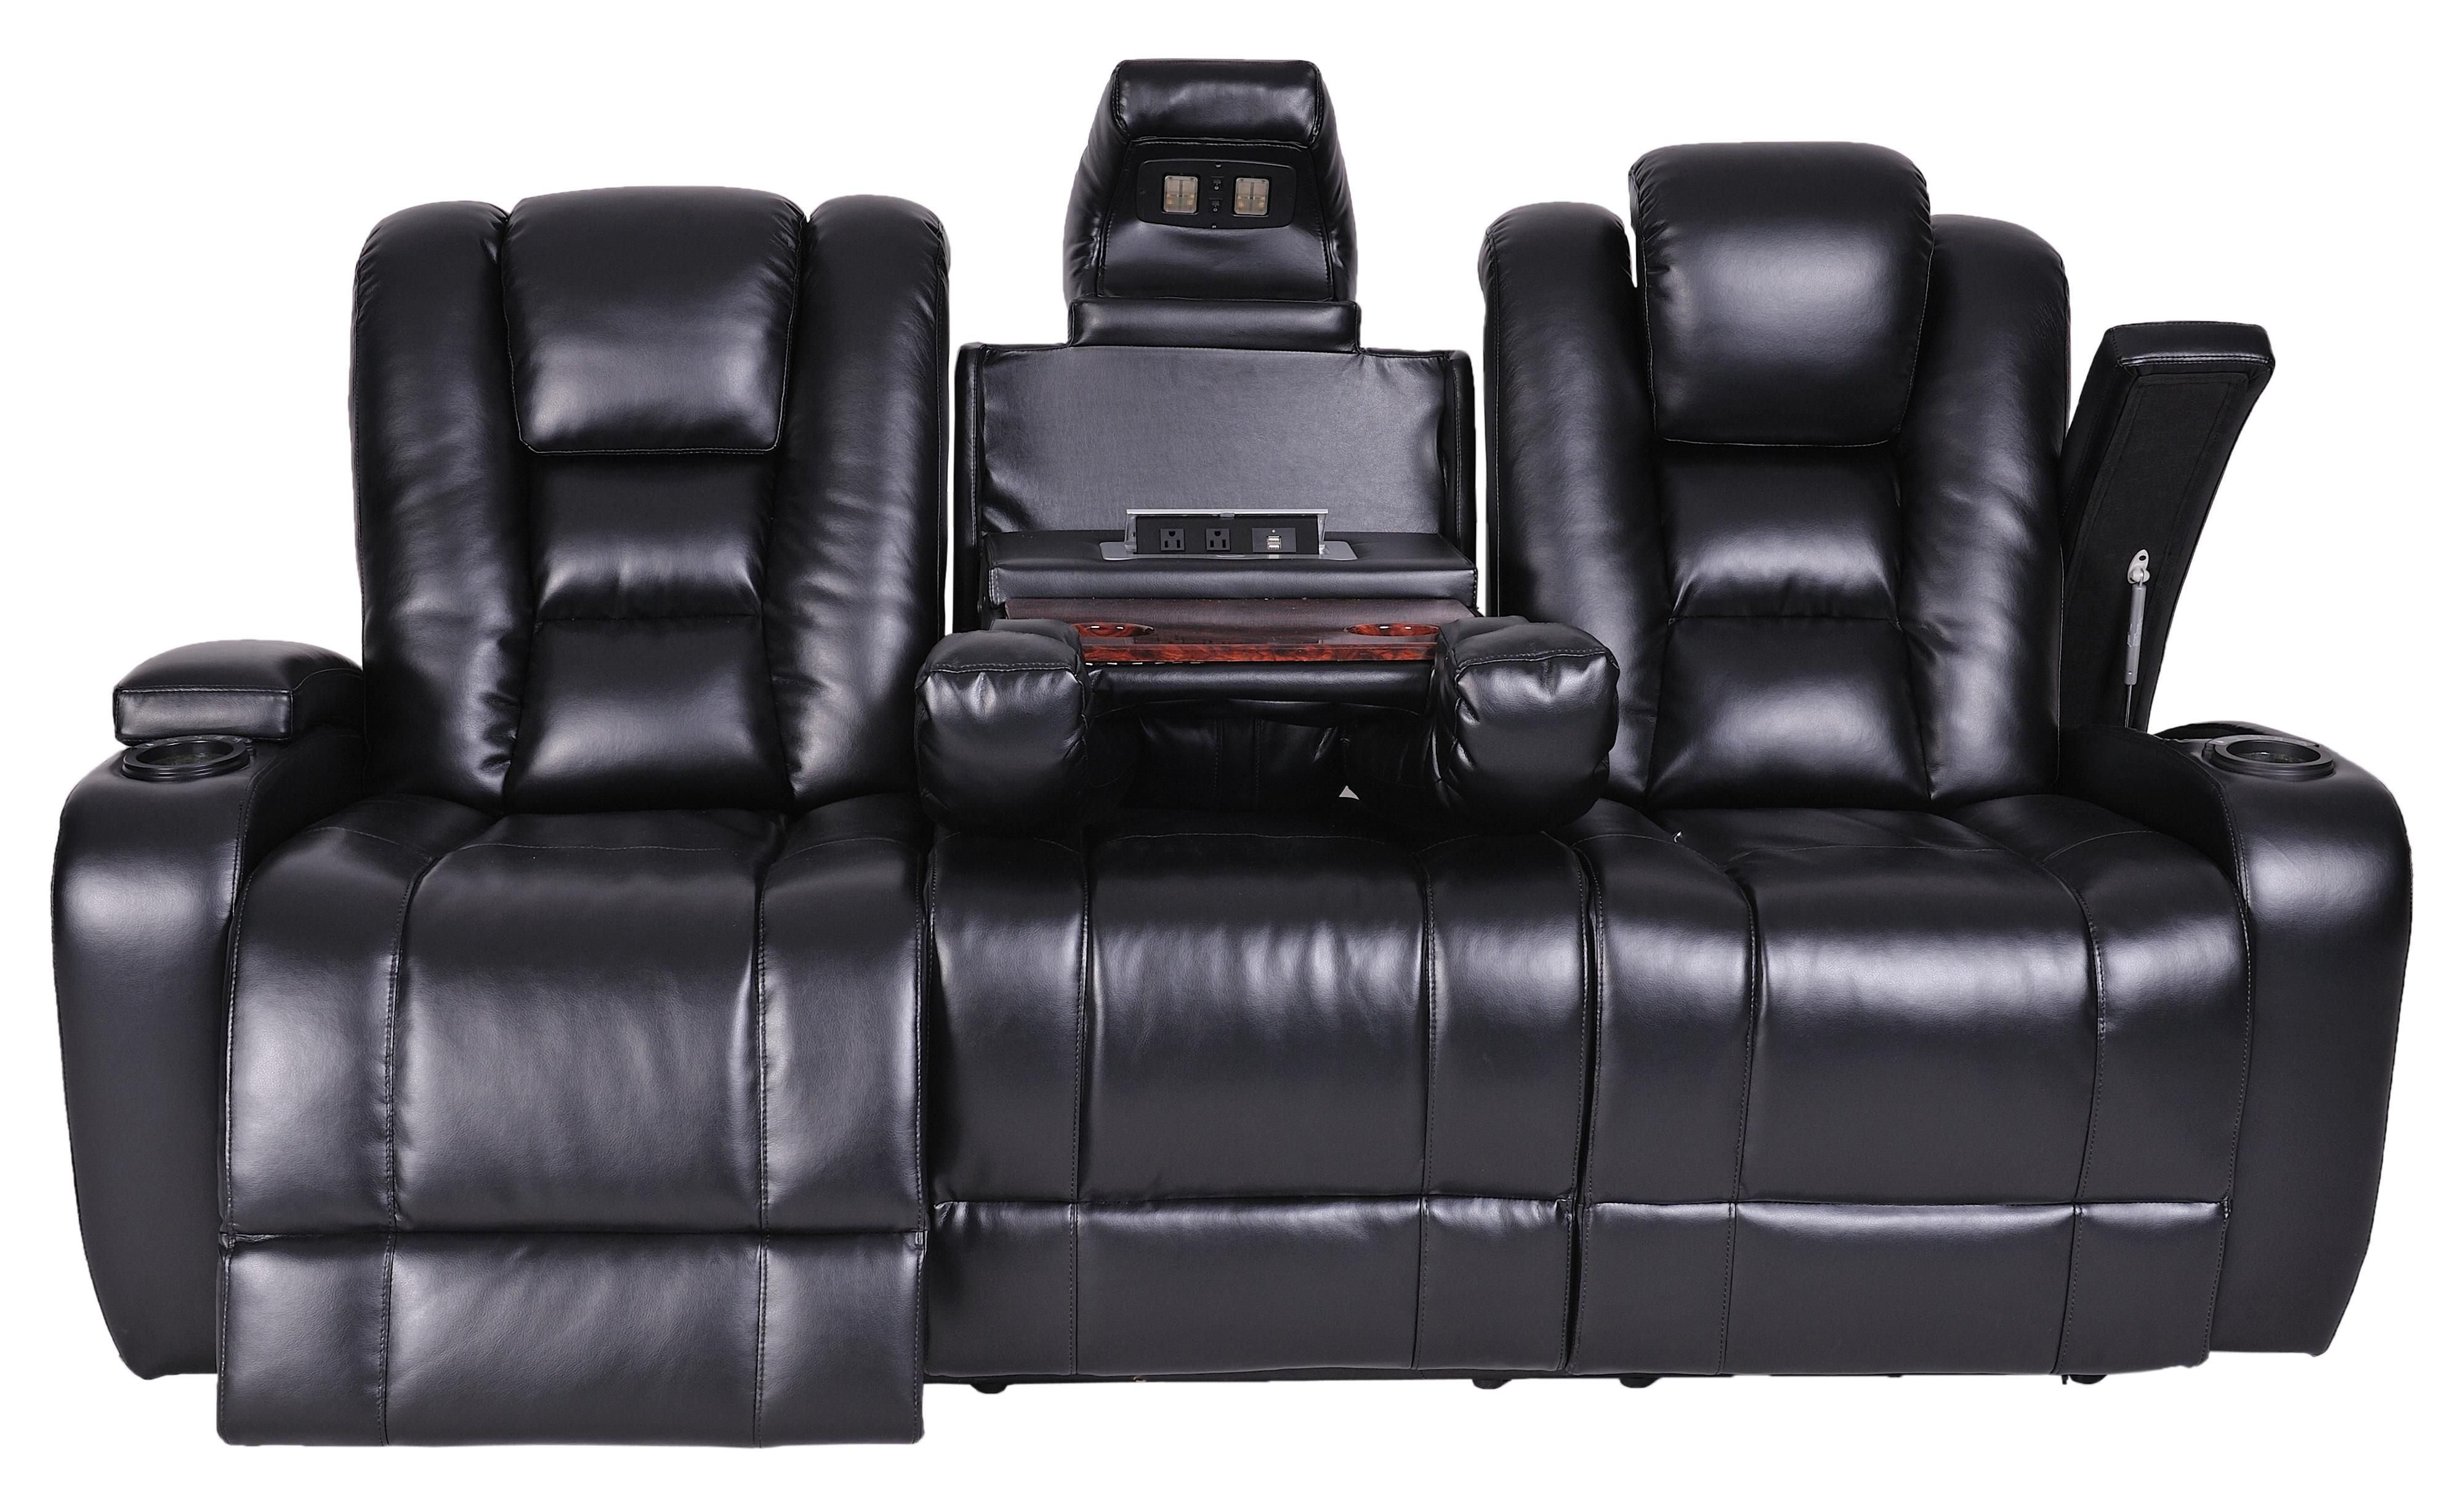 378 Power Reclining Sofa by LDI at Becker Furniture World  sc 1 st  Pinterest & 378 Power Reclining Sofa by LDI at Becker Furniture World | DID ... islam-shia.org